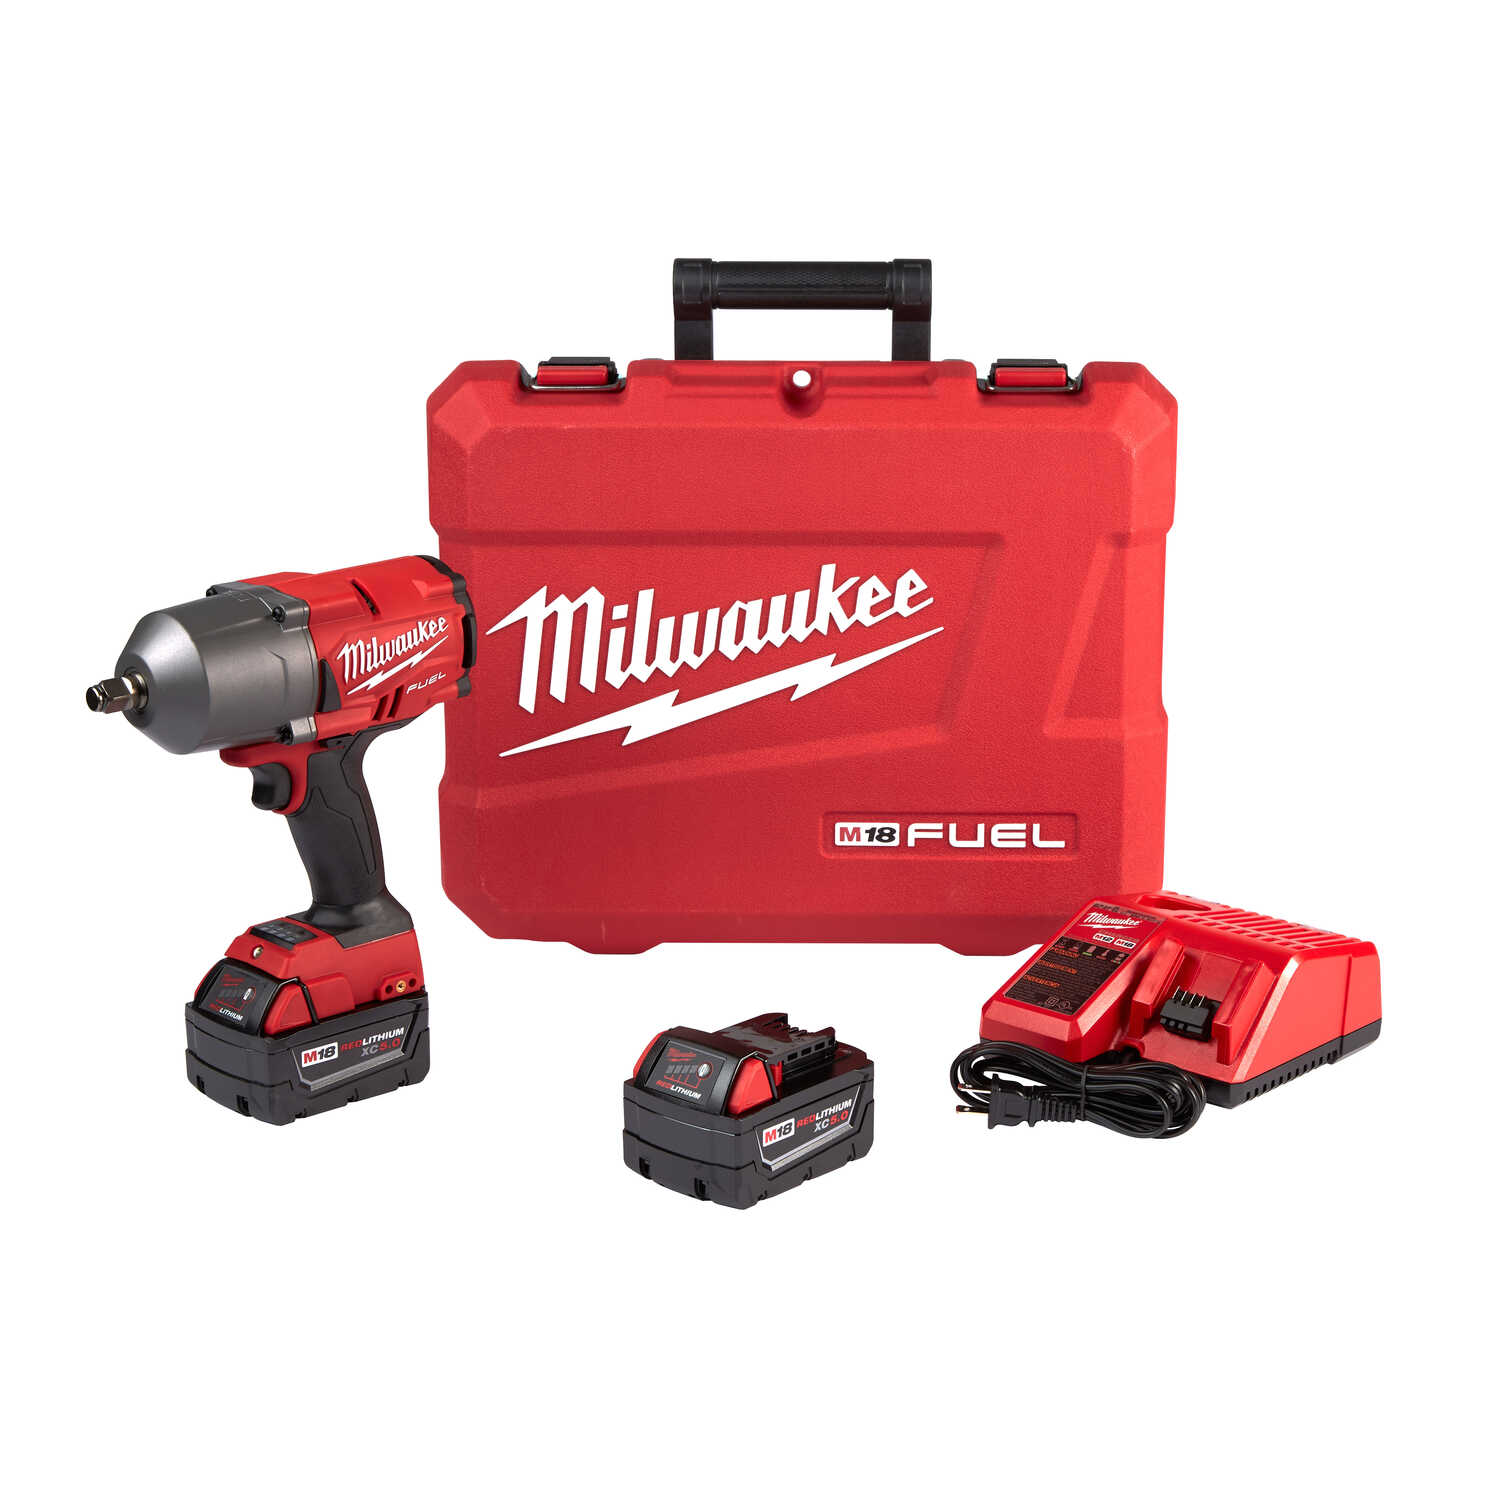 Milwaukee  M18 FUEL  1/2 in. Cordless  Brushless Impact Wrench with Friction Ring  5 amps 2100 ipm 1